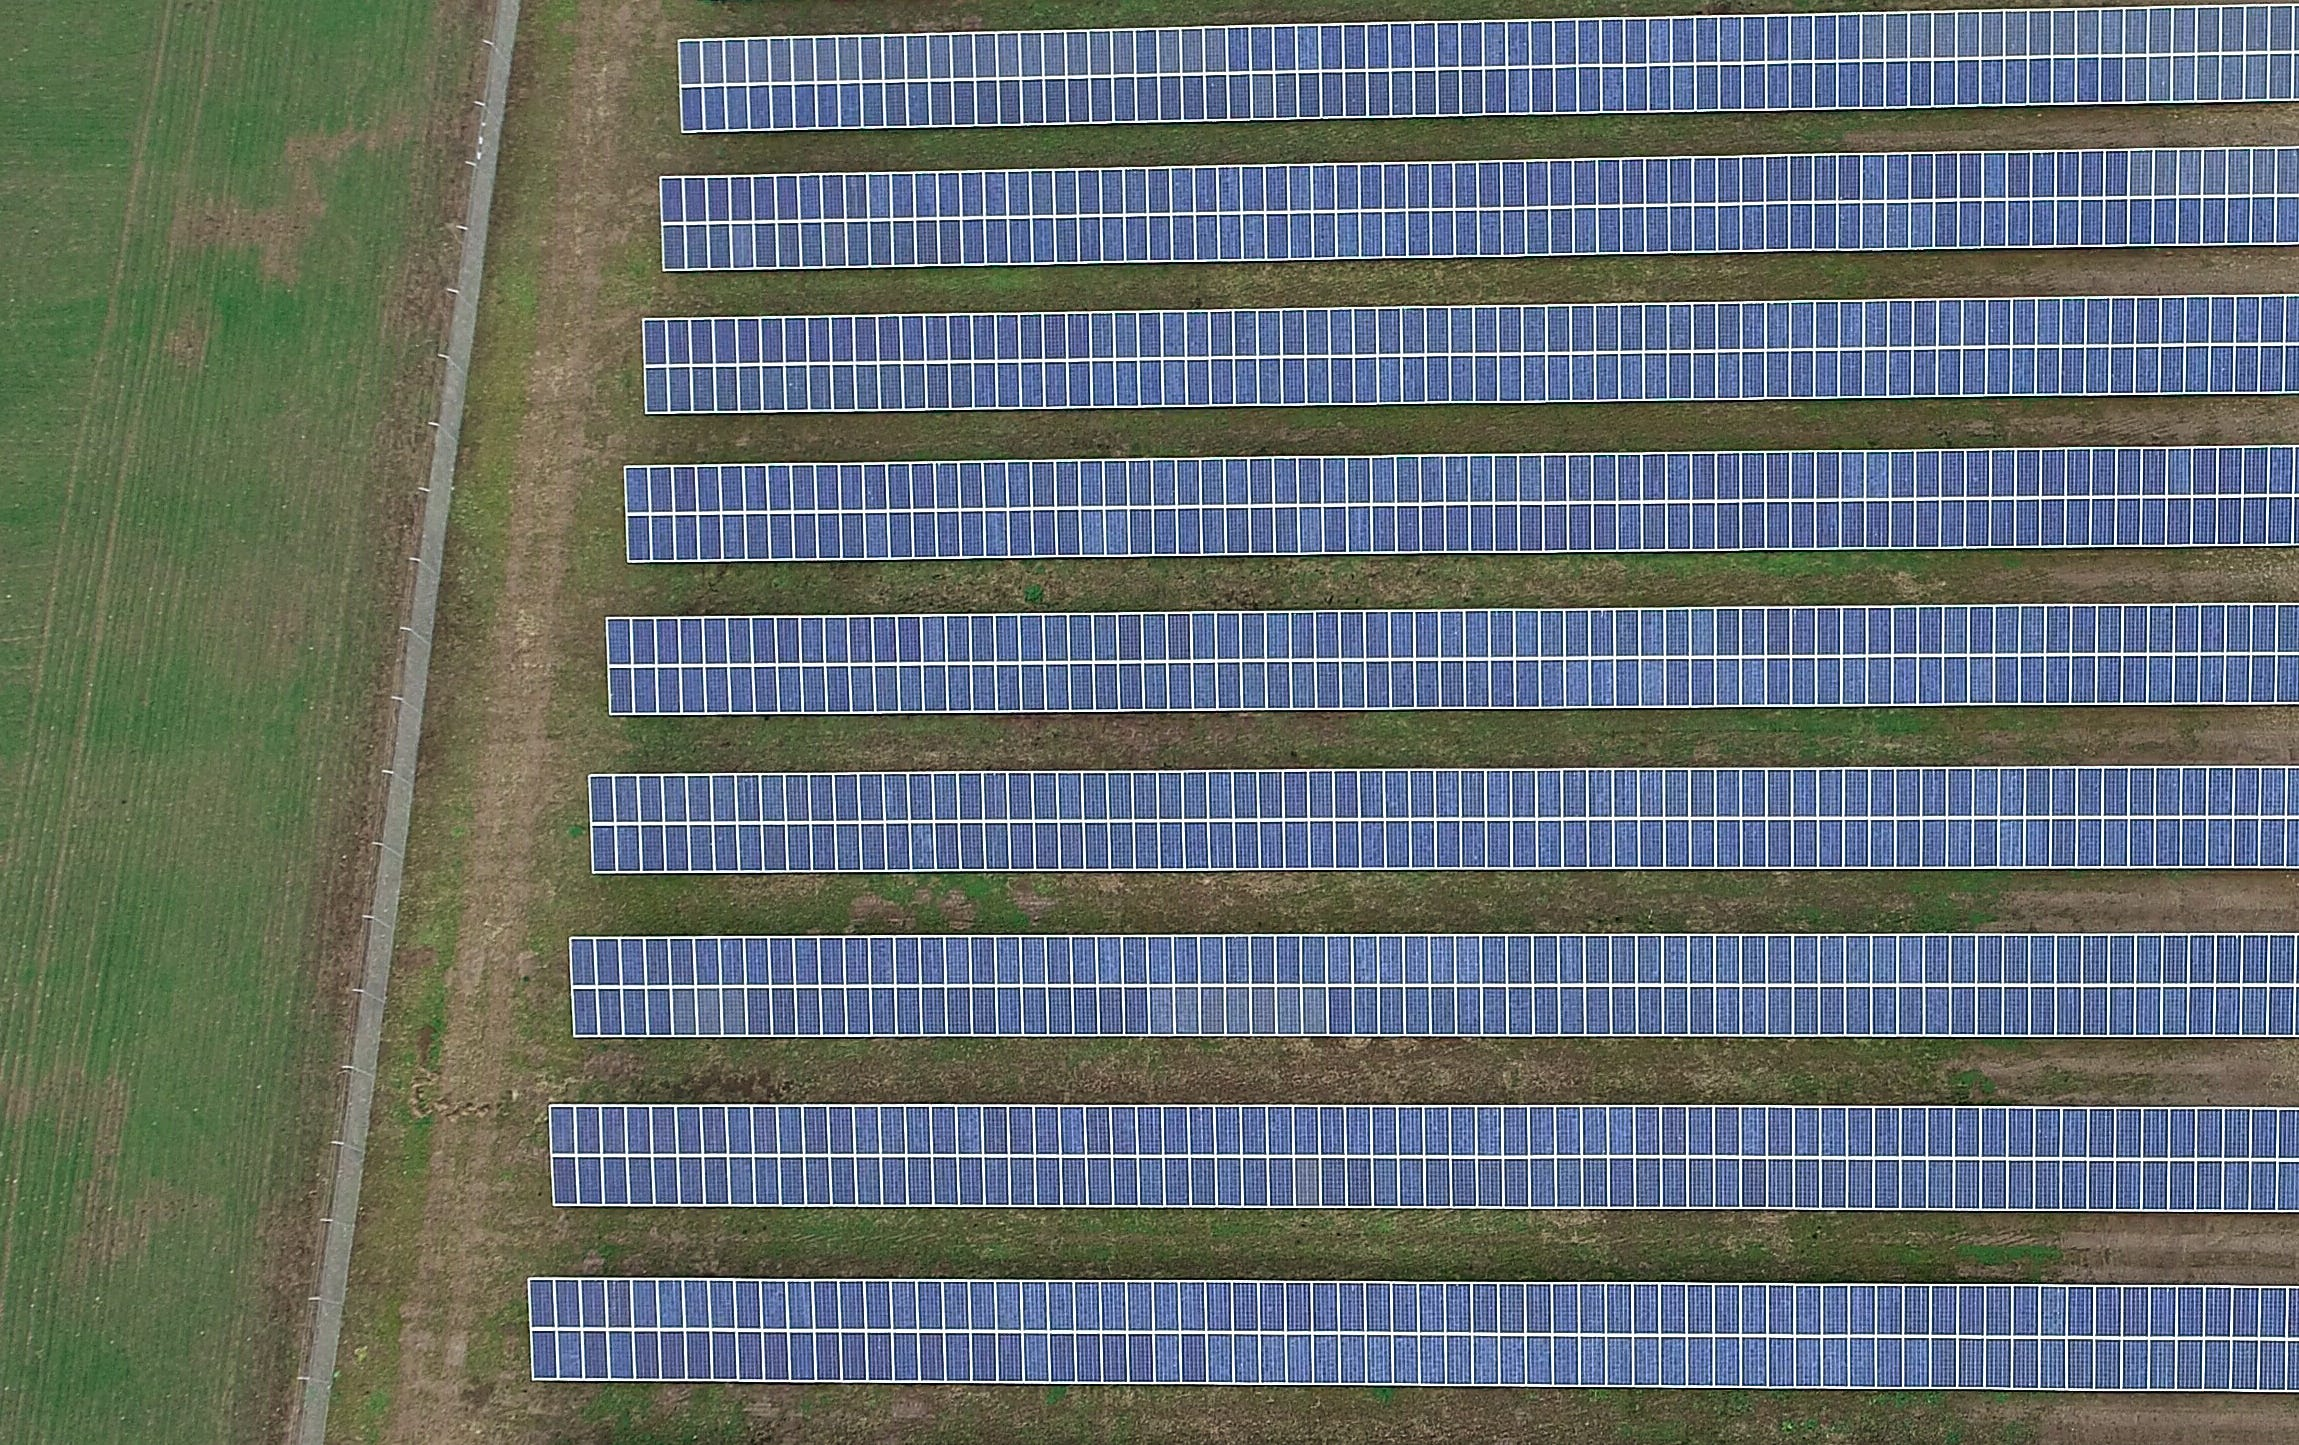 Restrictions to solar arrays may be on the way in Oregon